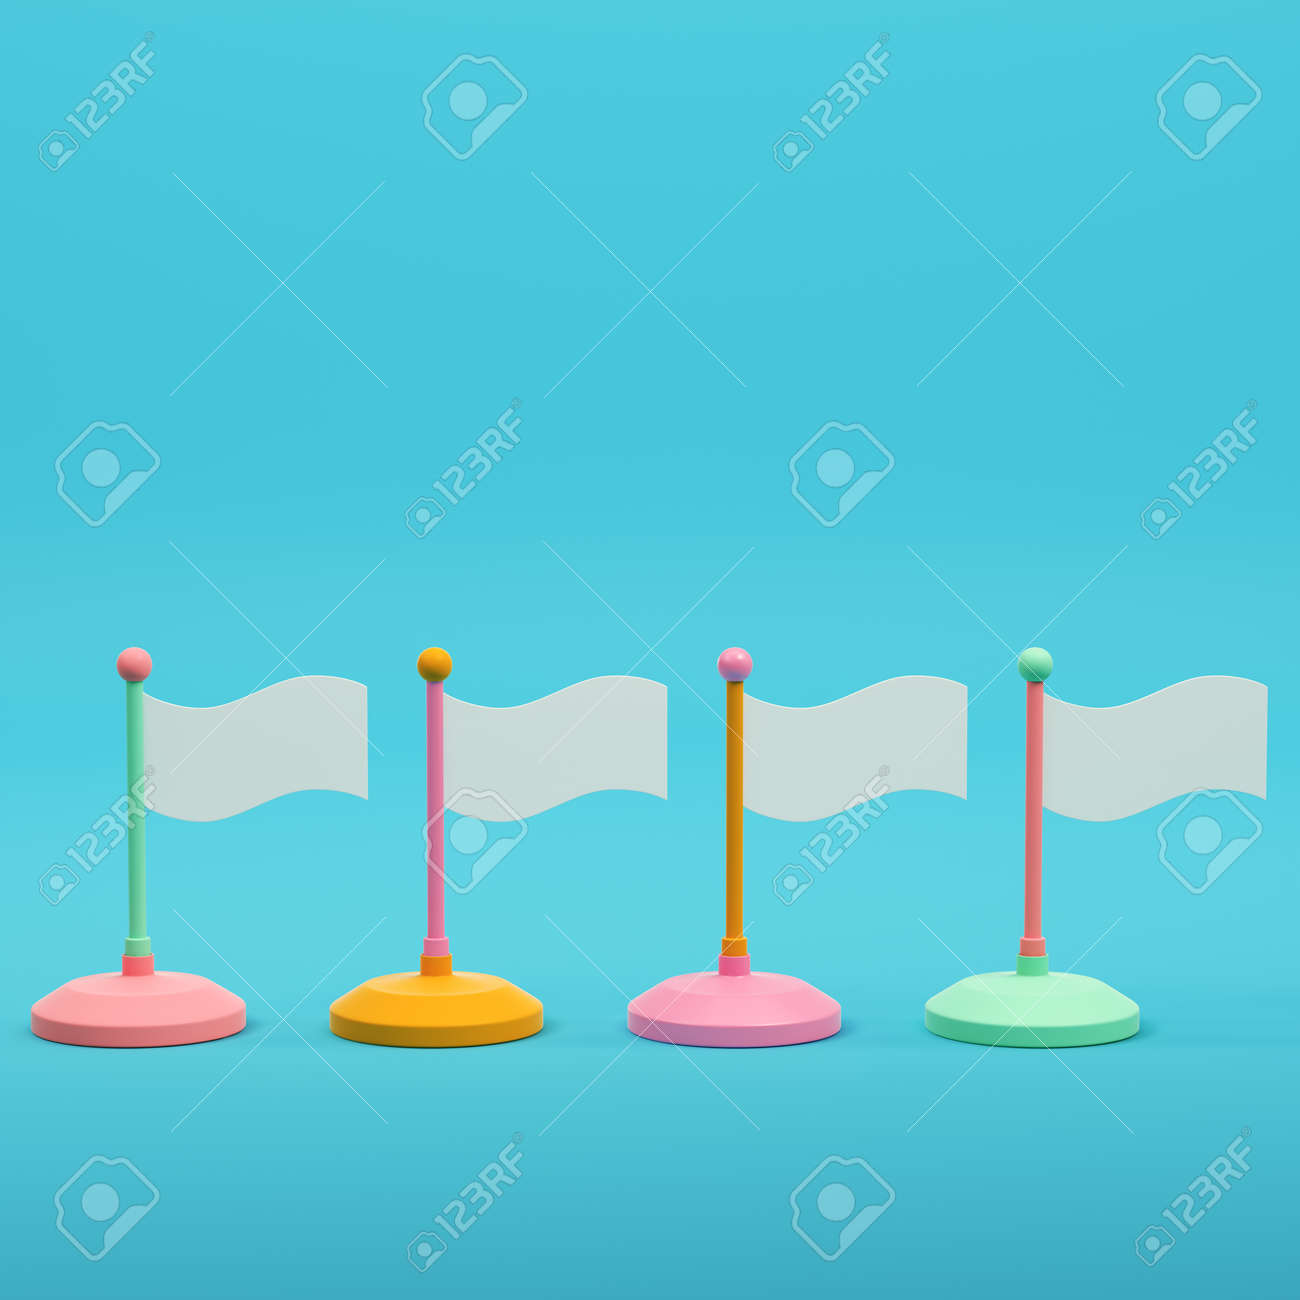 Colorful flags on bright blue background in pastel colors. Minimalism concept. 3d render - 172255050